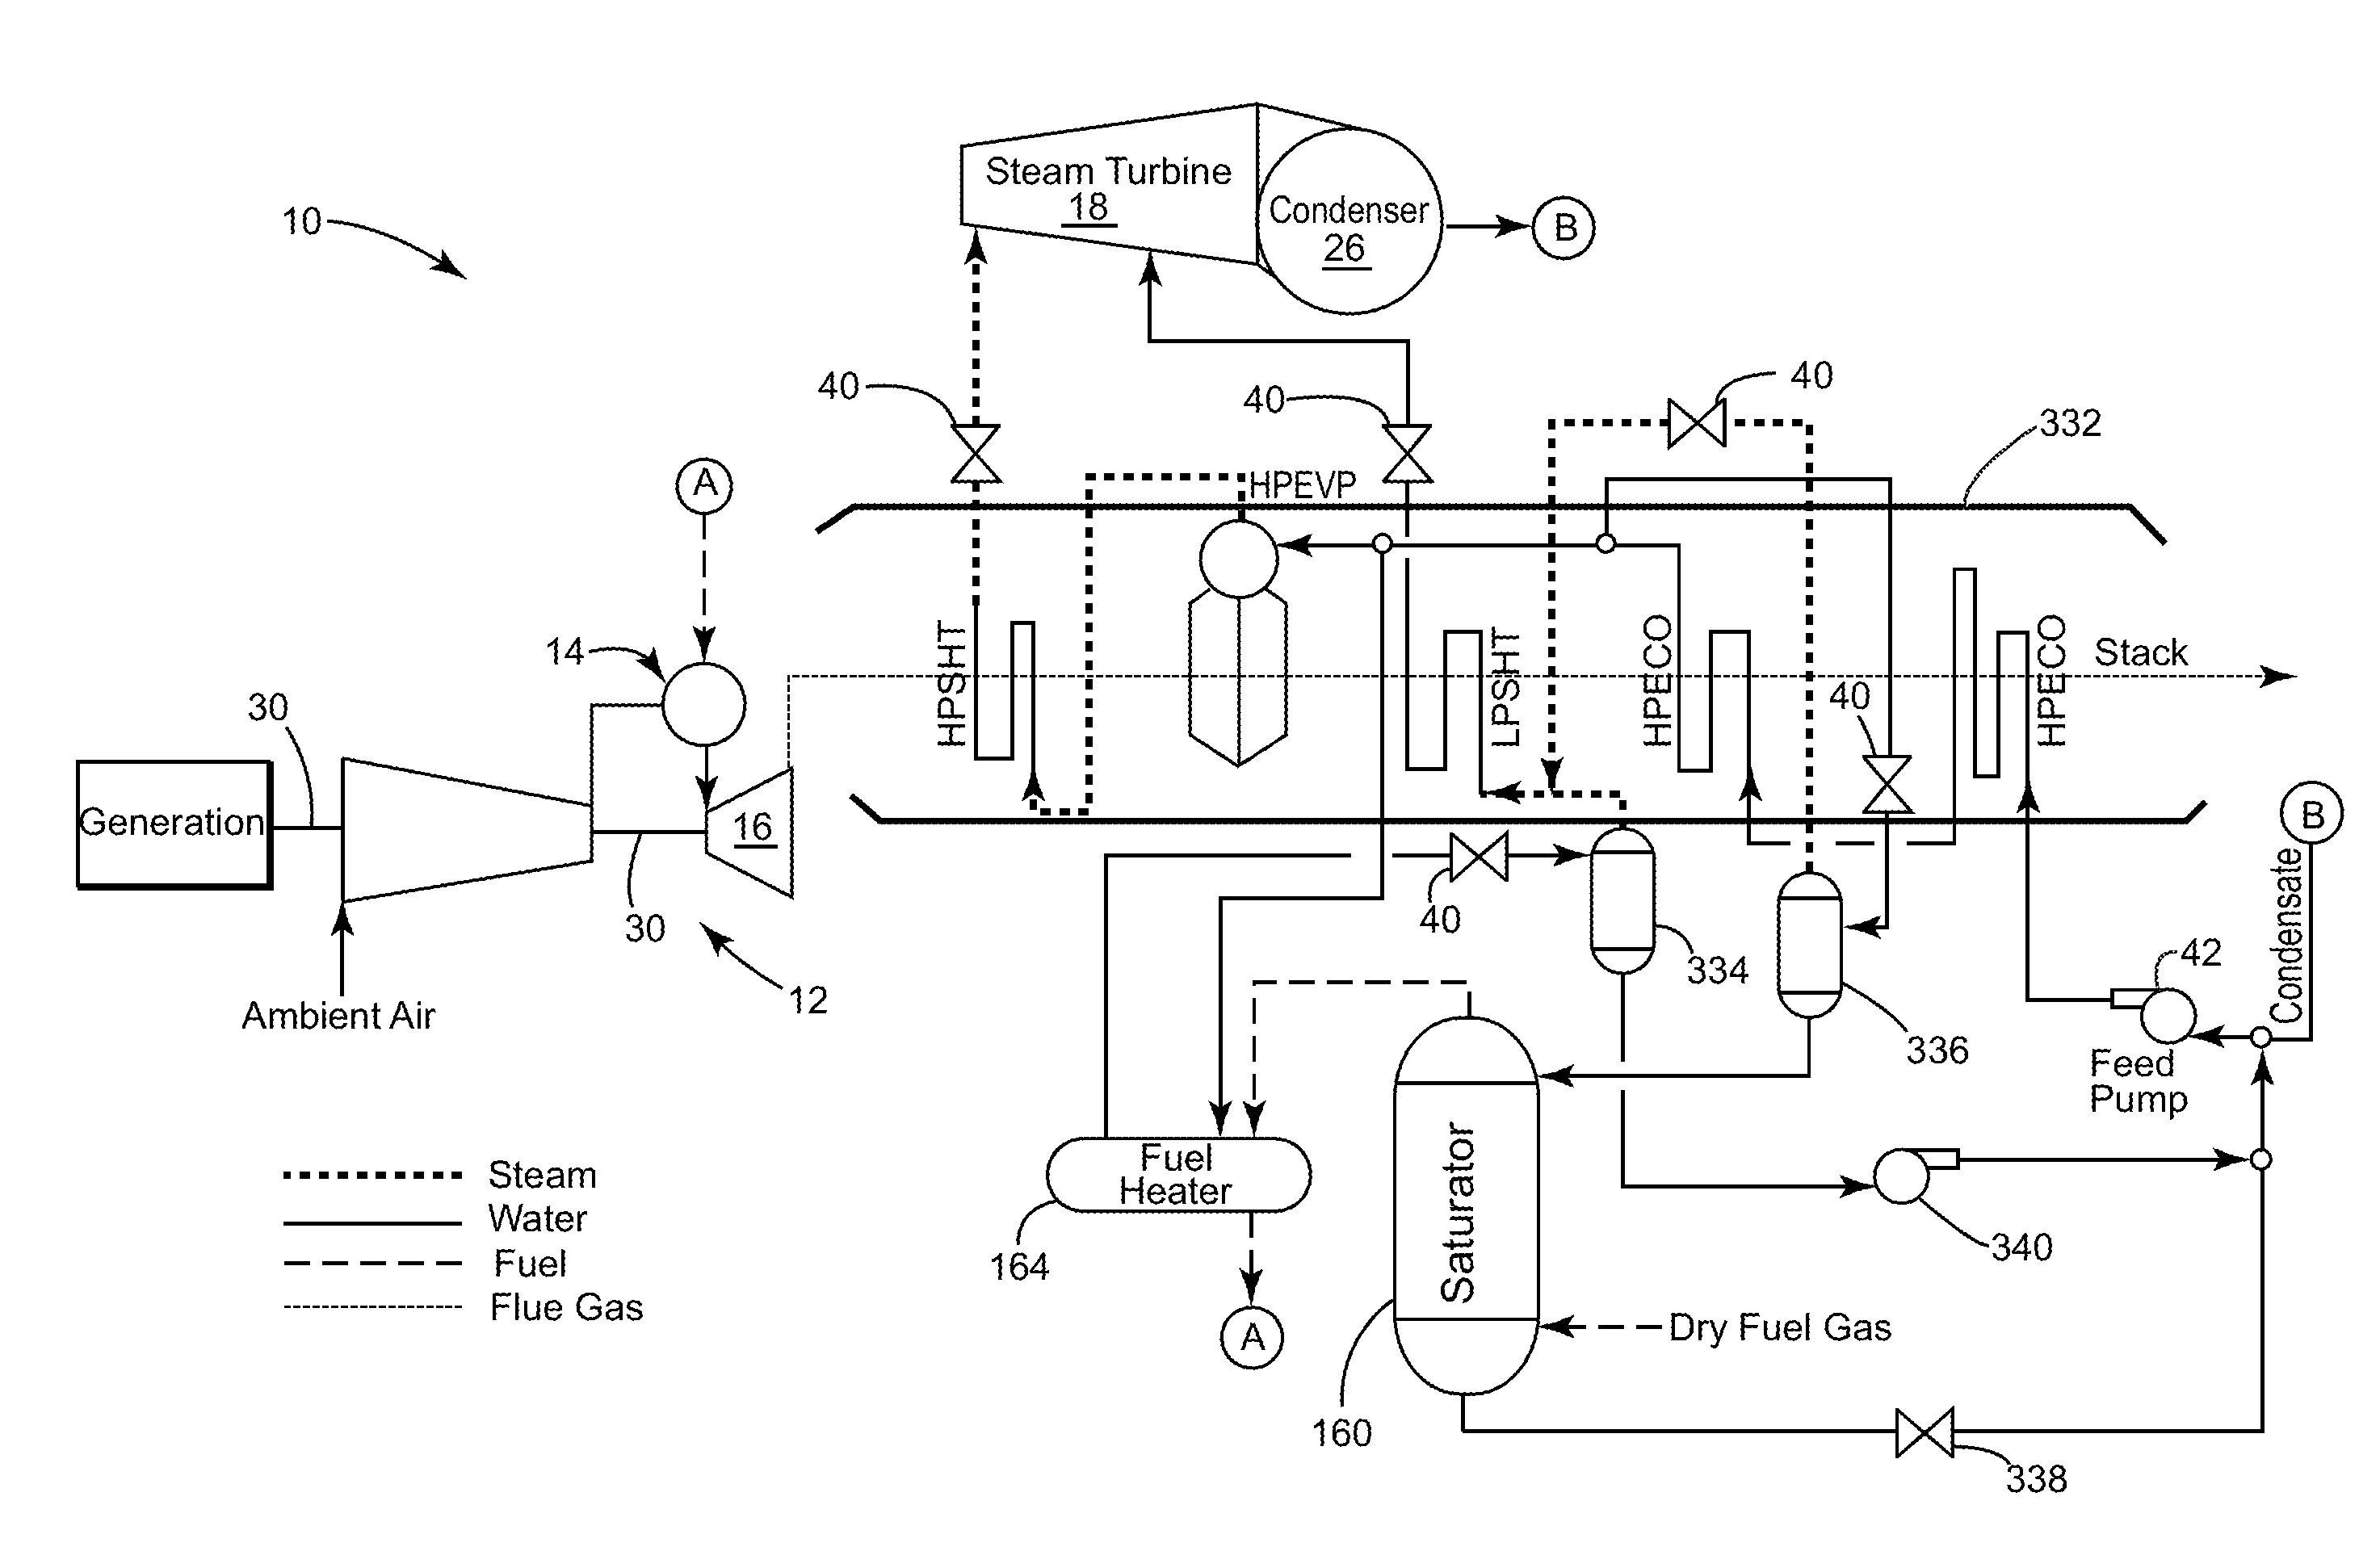 Patent US System for fuel gas moisturization and